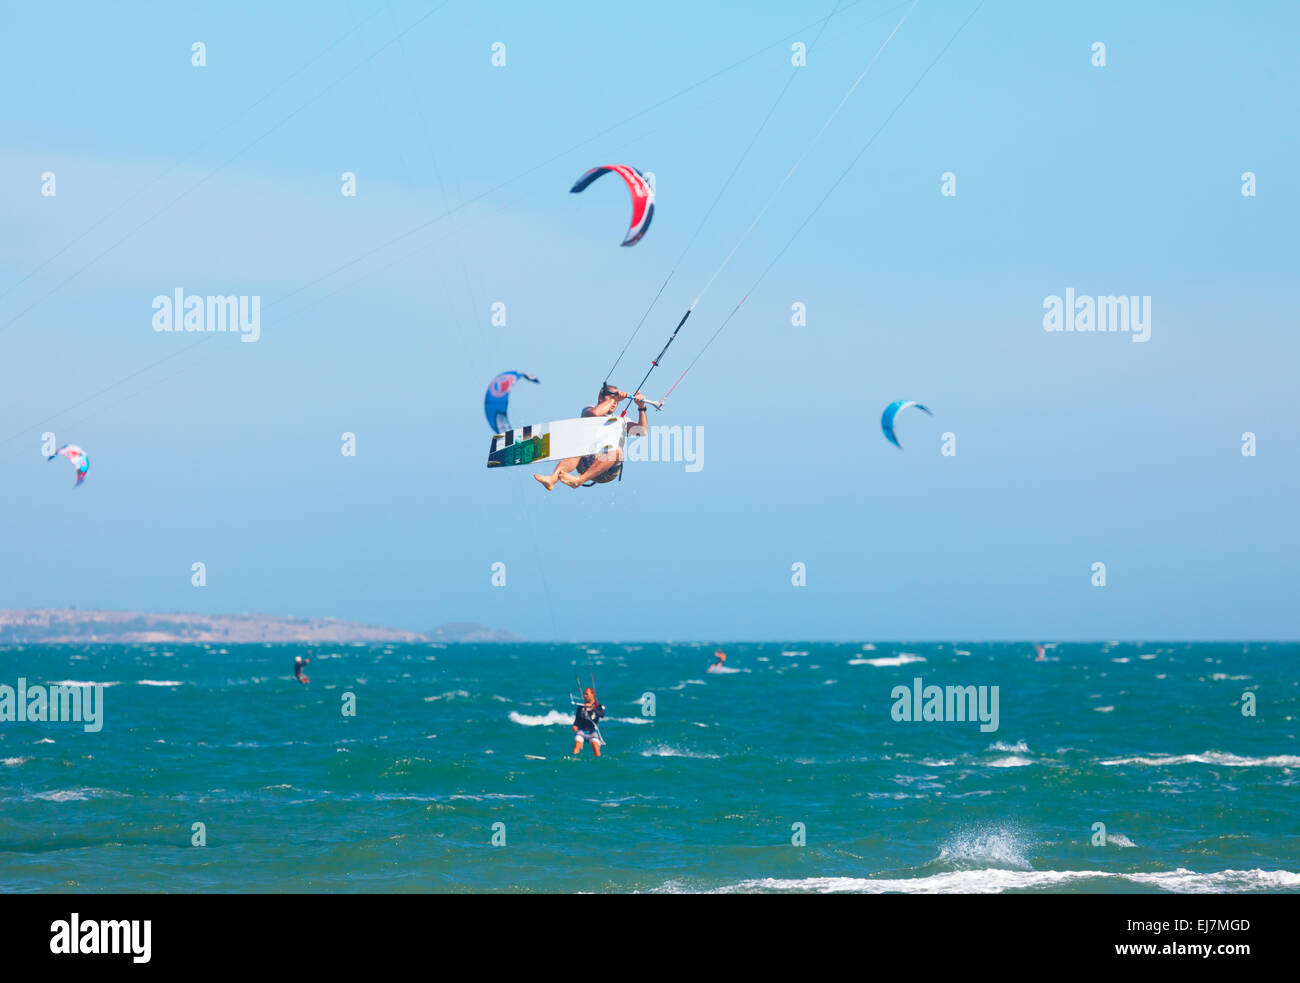 Kitesurfers riding the waves - Stock Image